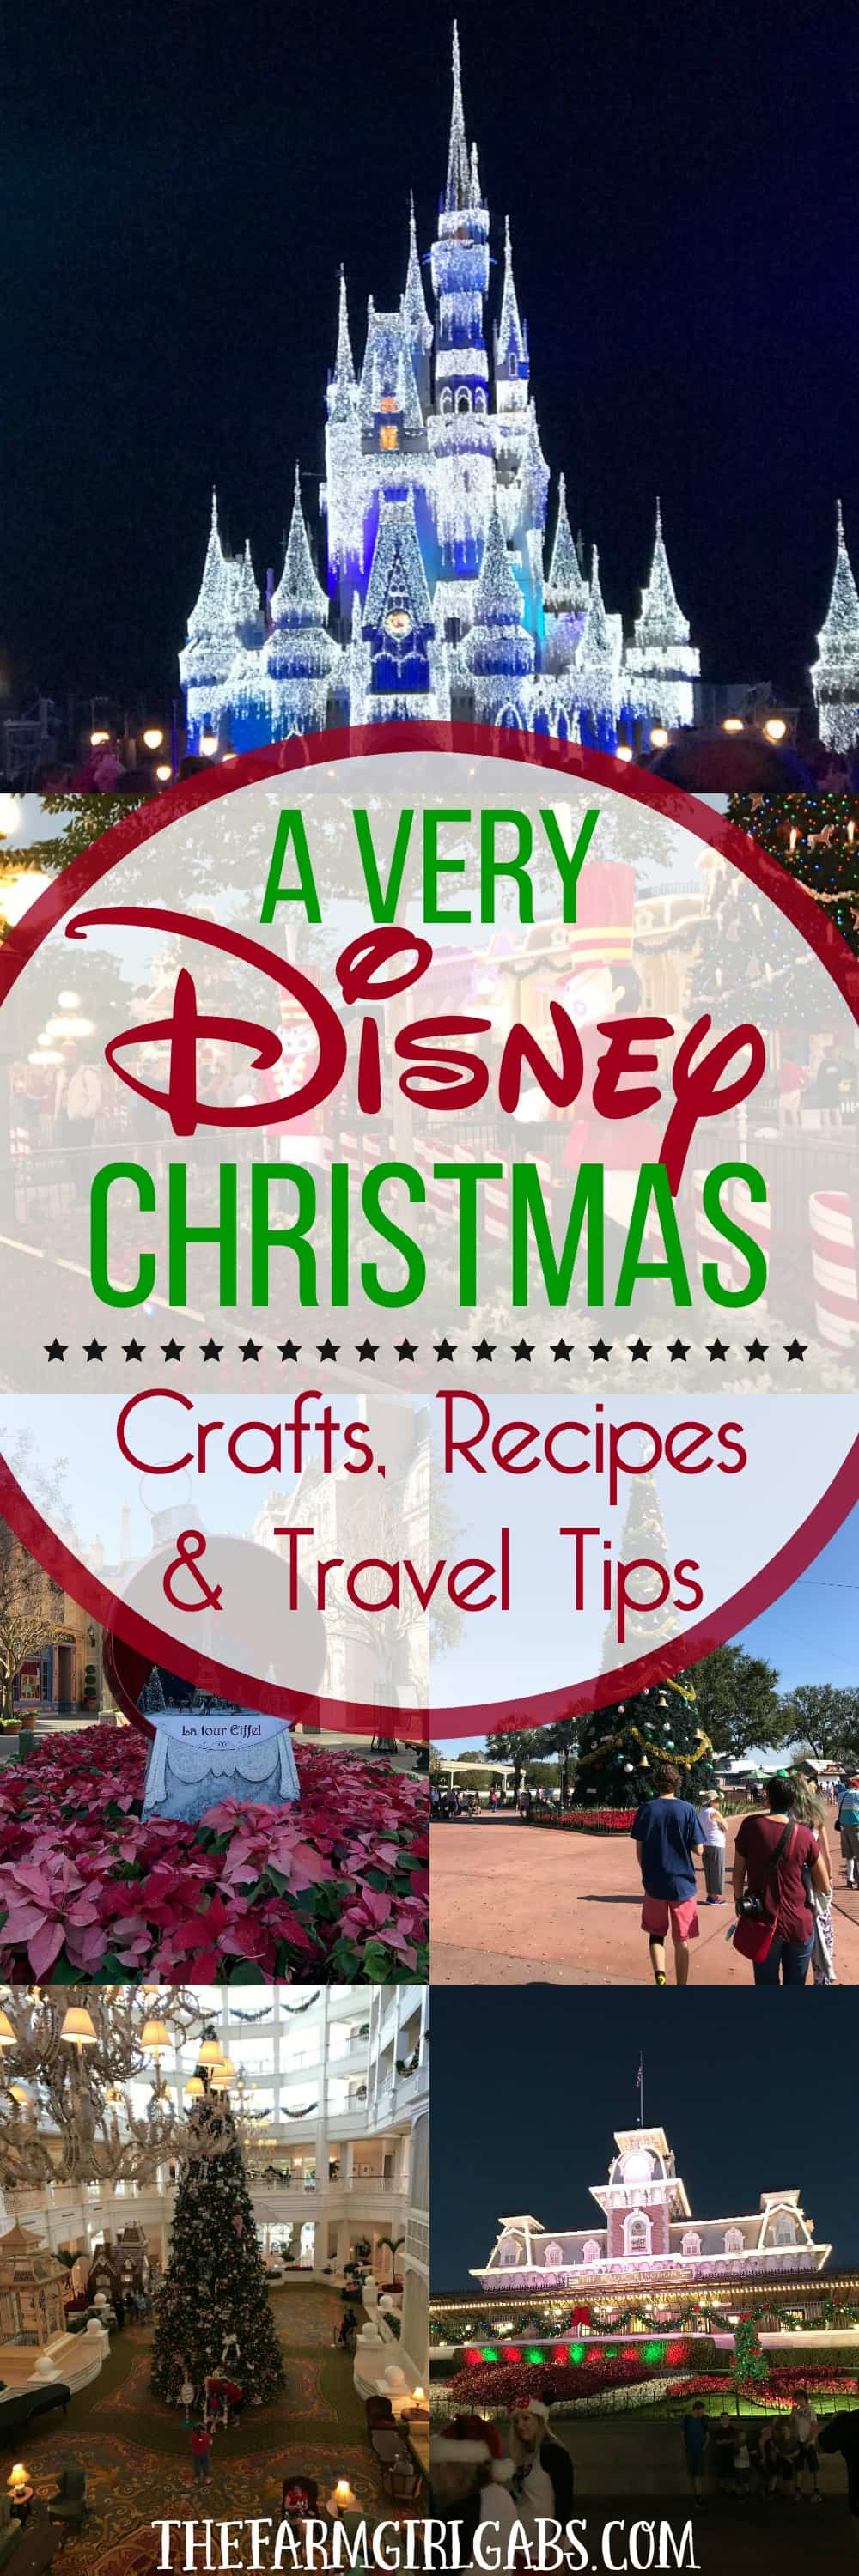 A Very Disney Christmas: The Ultimate Collection of Disney Crafts, Recipes & Disney Holiday Travel Tips. #WaltDisneyWorld #DisneyCrafts #DisneyRecipes